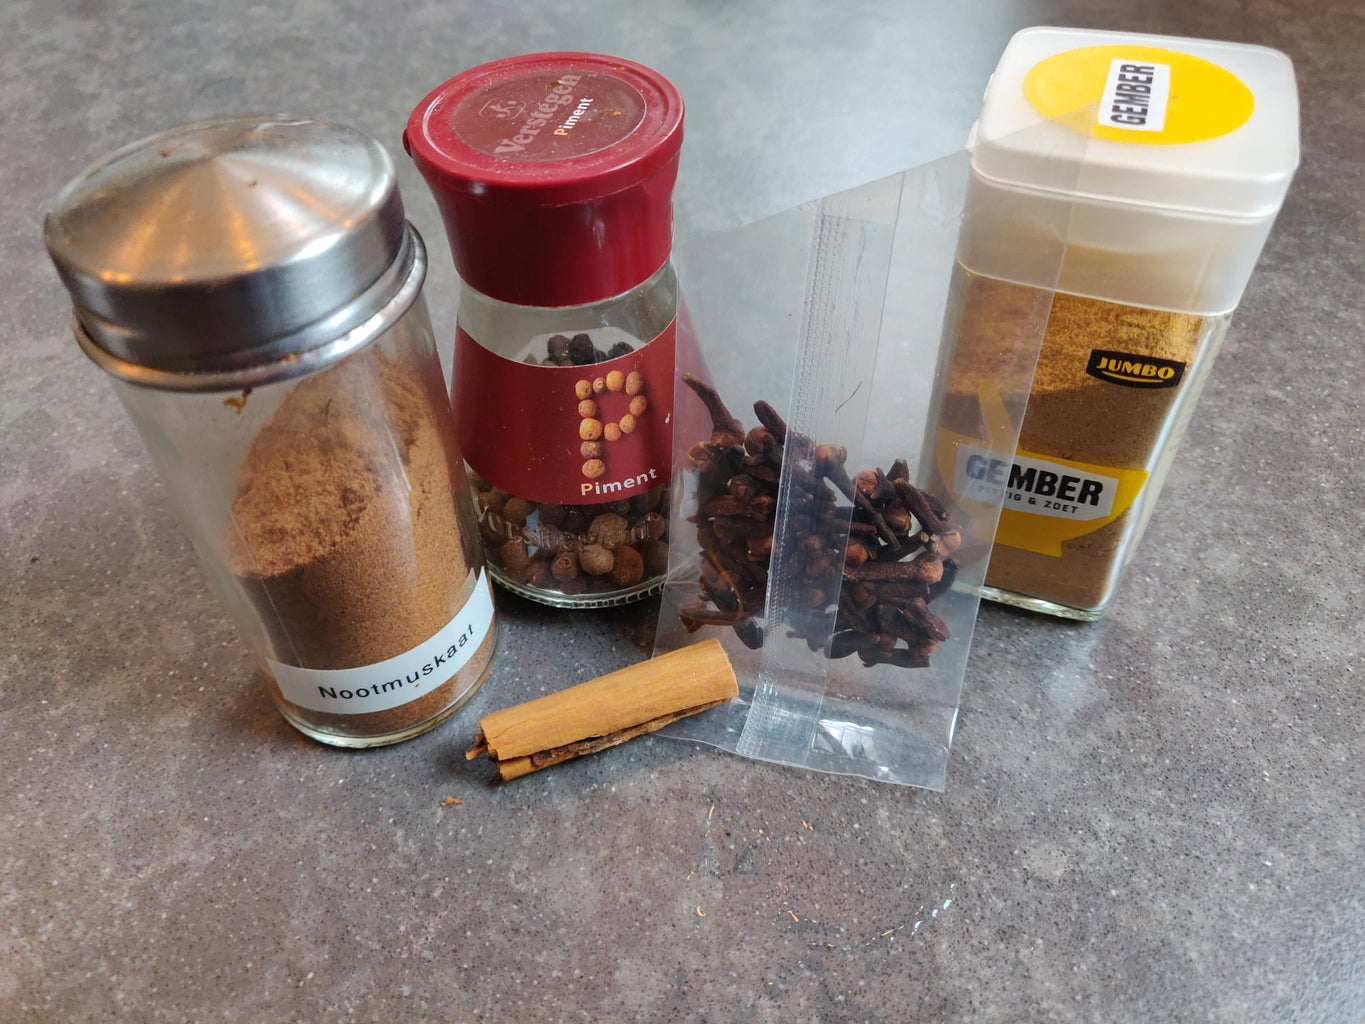 'Speculaas' Spice Mix